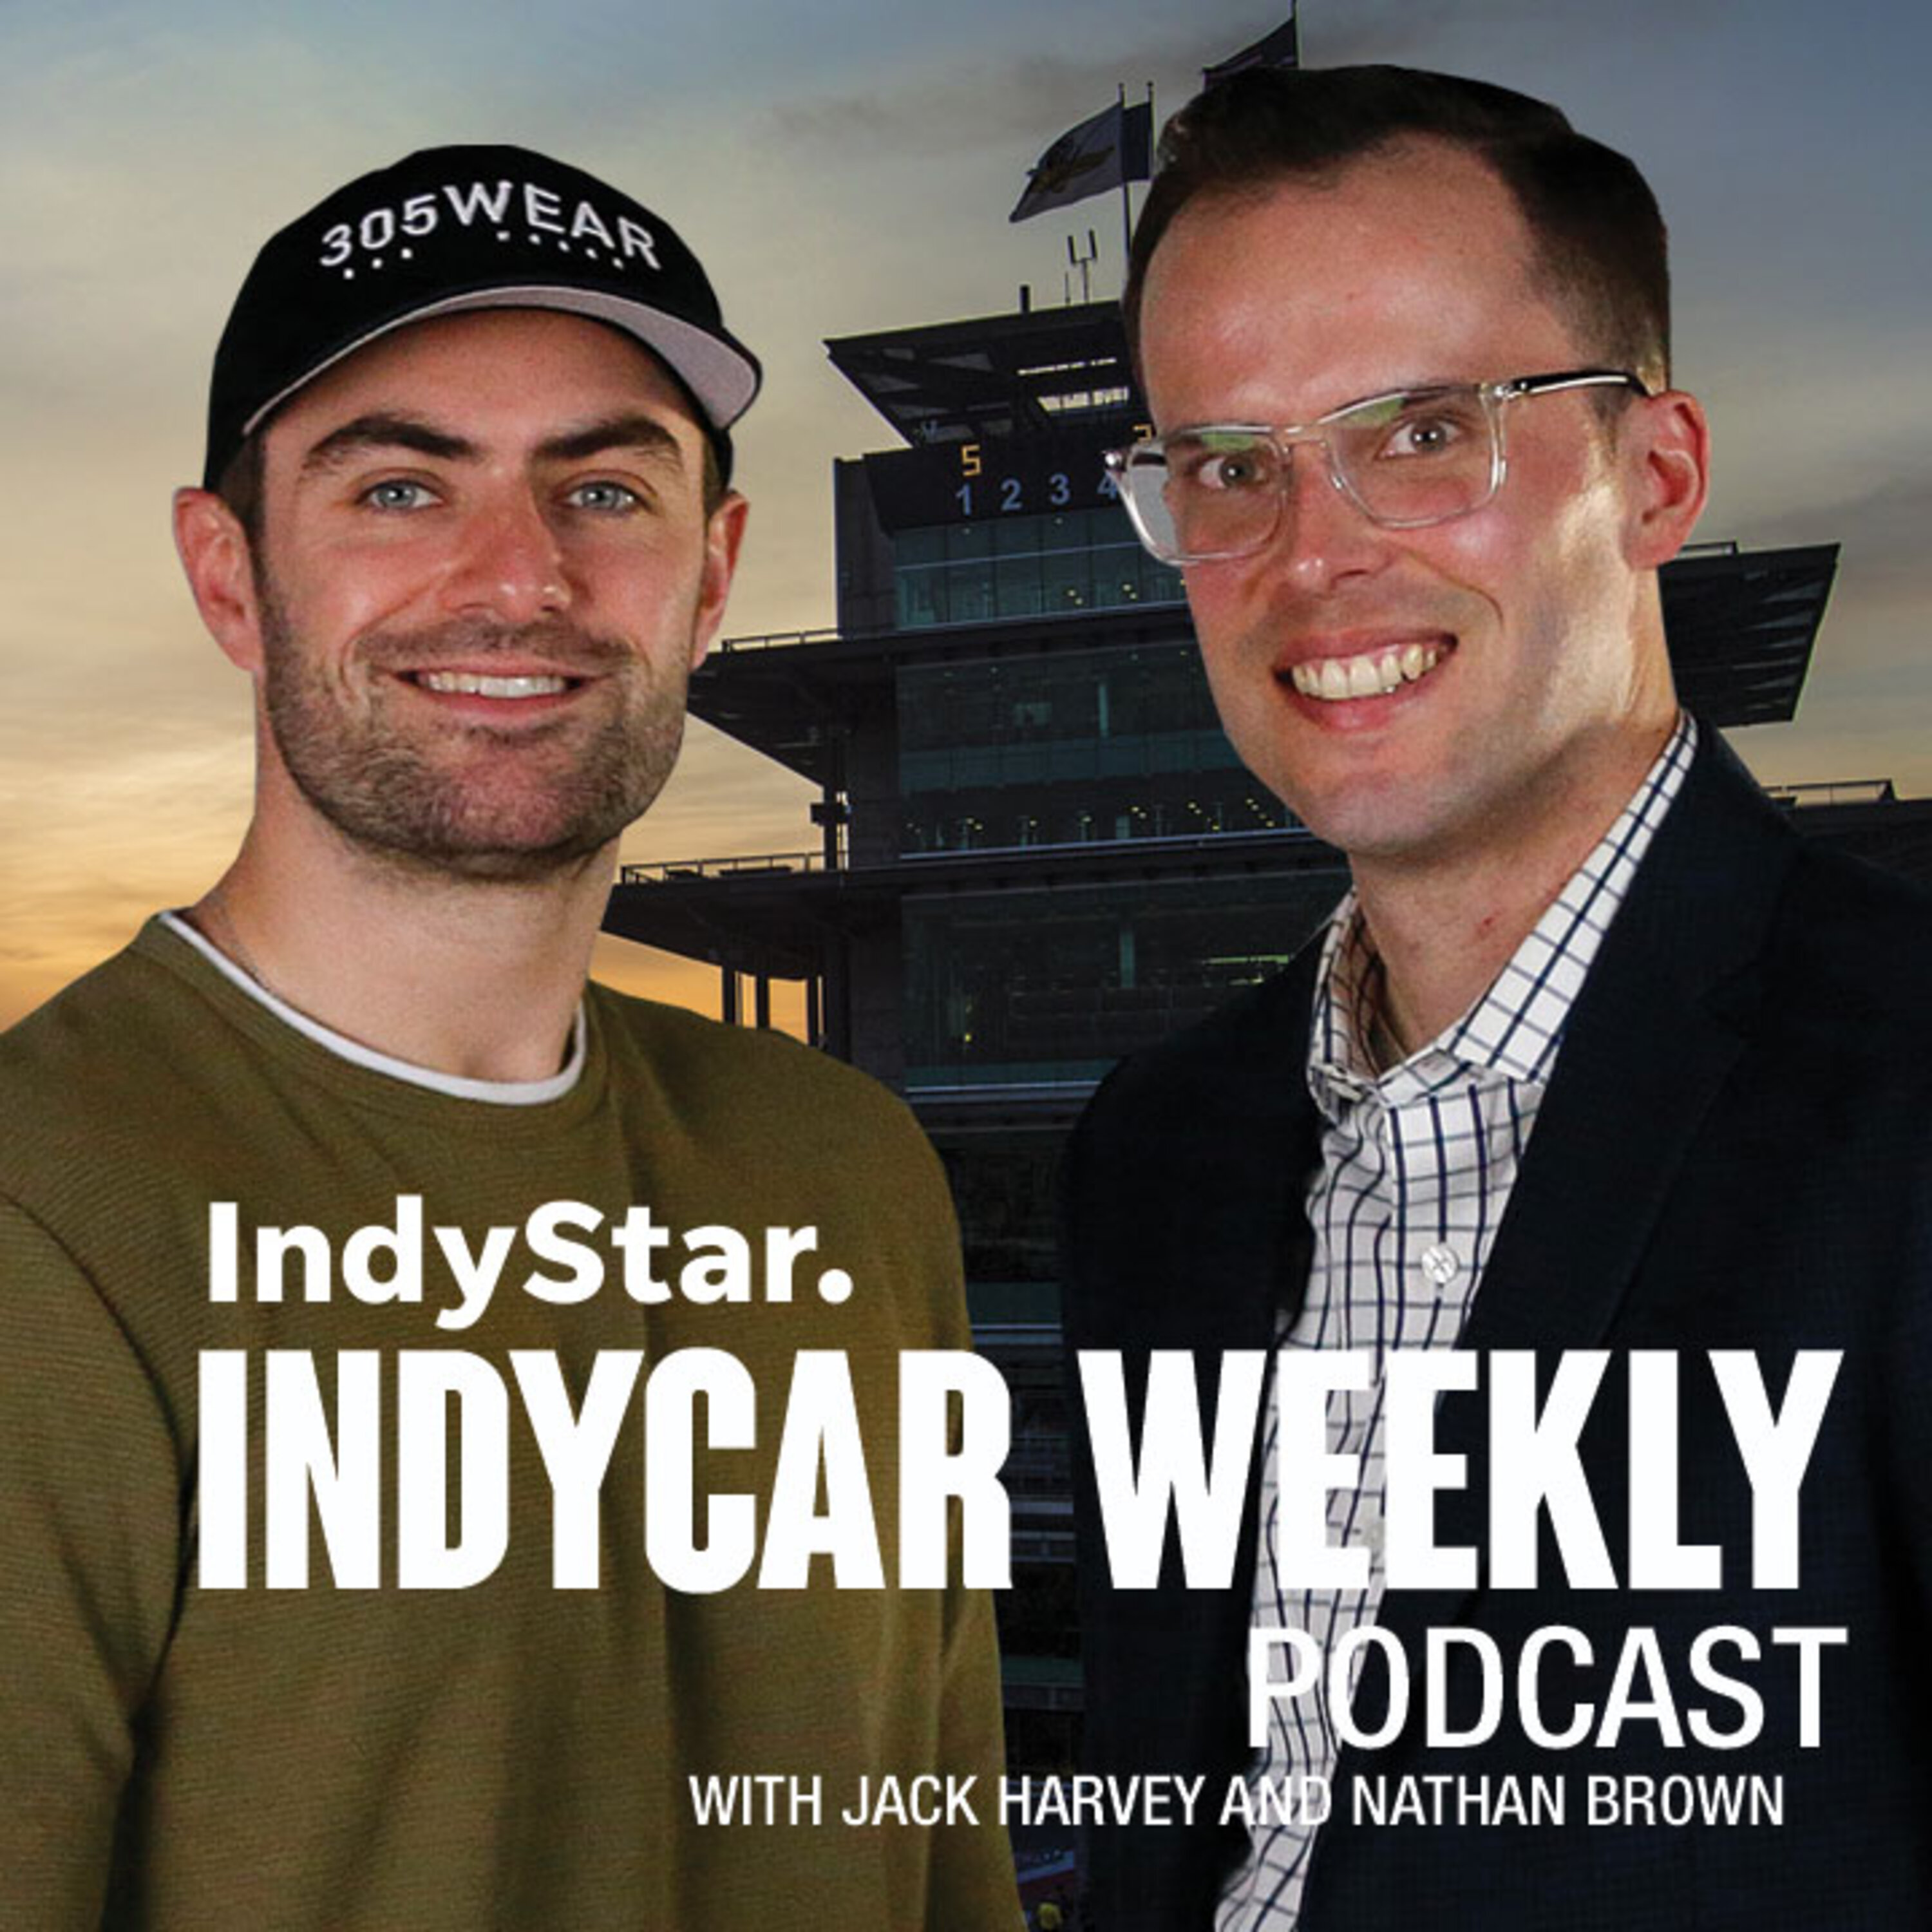 IndyCar Weekly with Jack Harvey: St. Pete. recap, Jack and Nathan look ahead to Texas